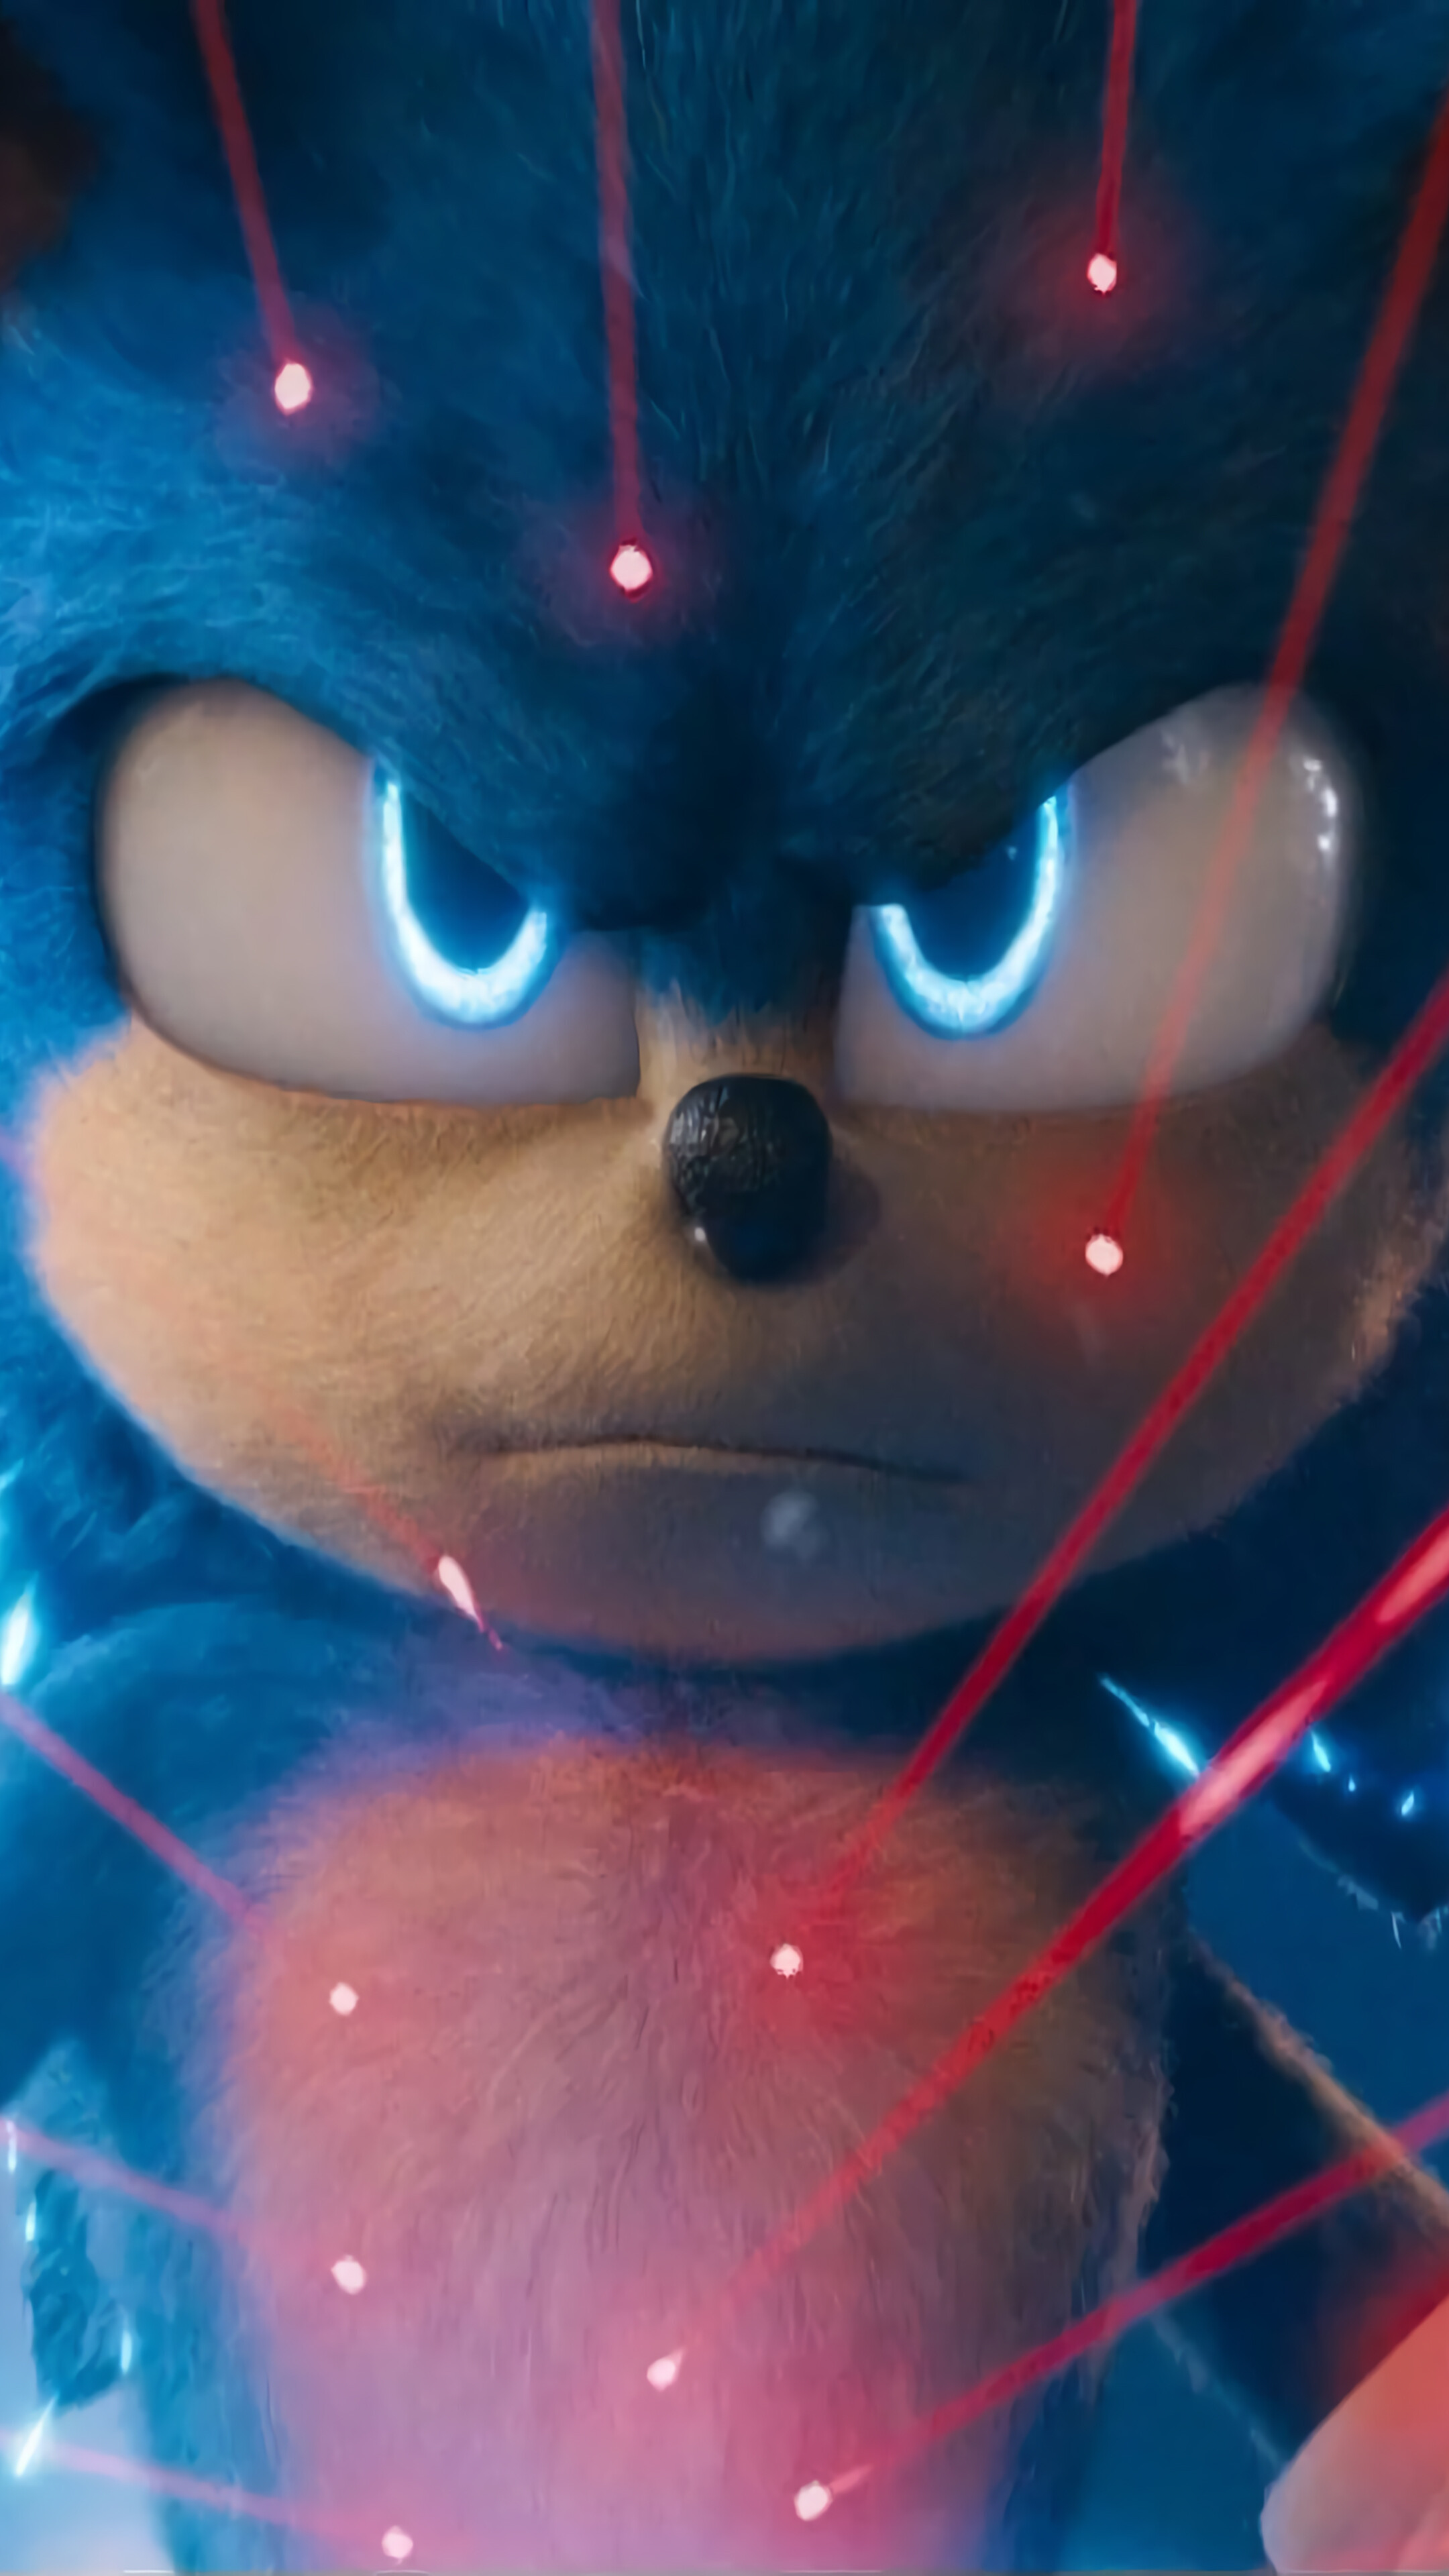 Sonic The Hedgehog Movie Wallpaper 4k 2964685 Hd Wallpaper Backgrounds Download